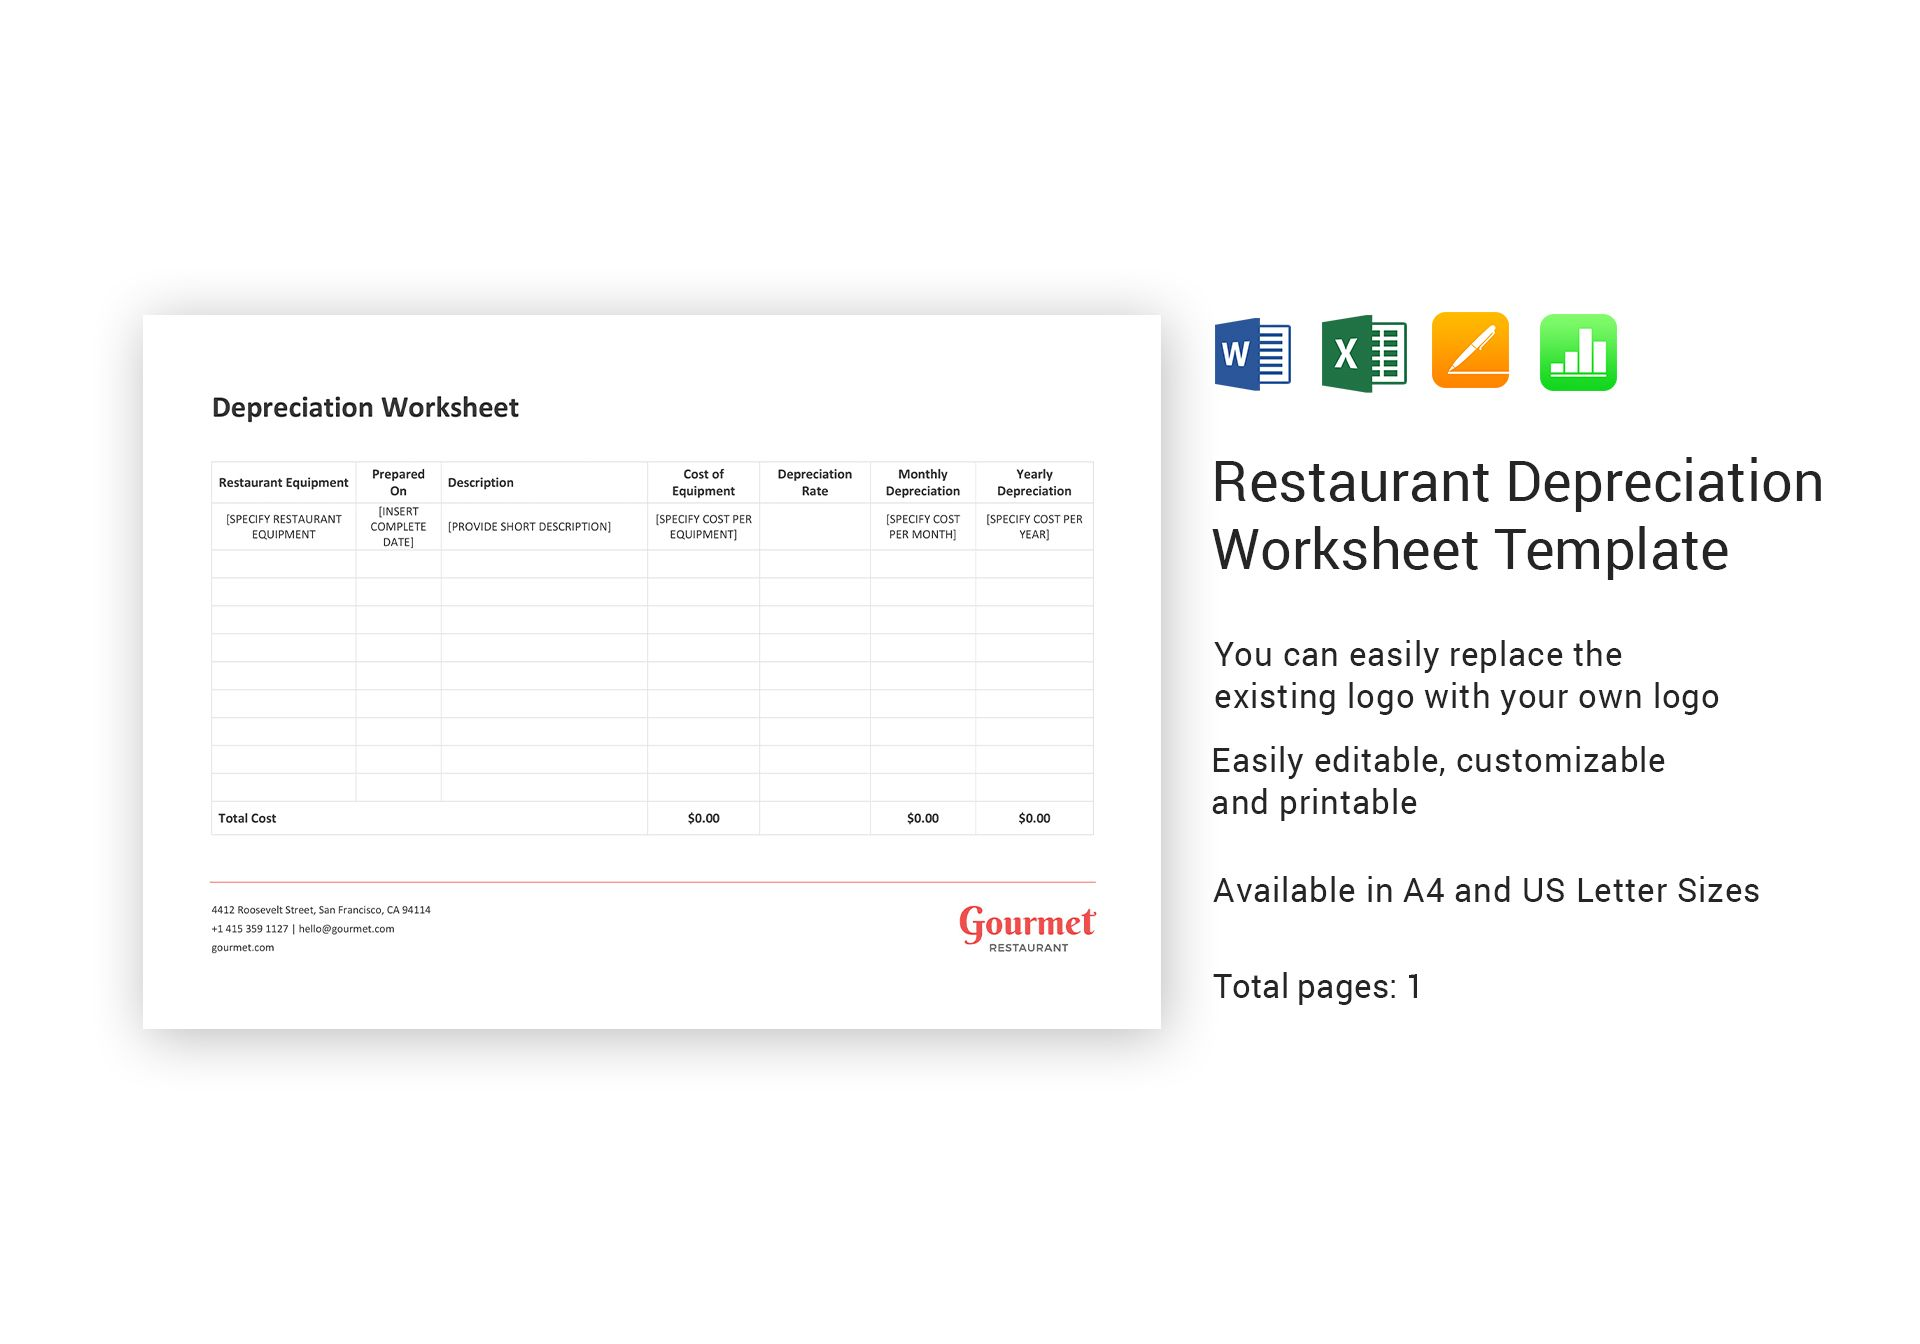 Restaurant Depreciation Worksheet Template In Word Excel